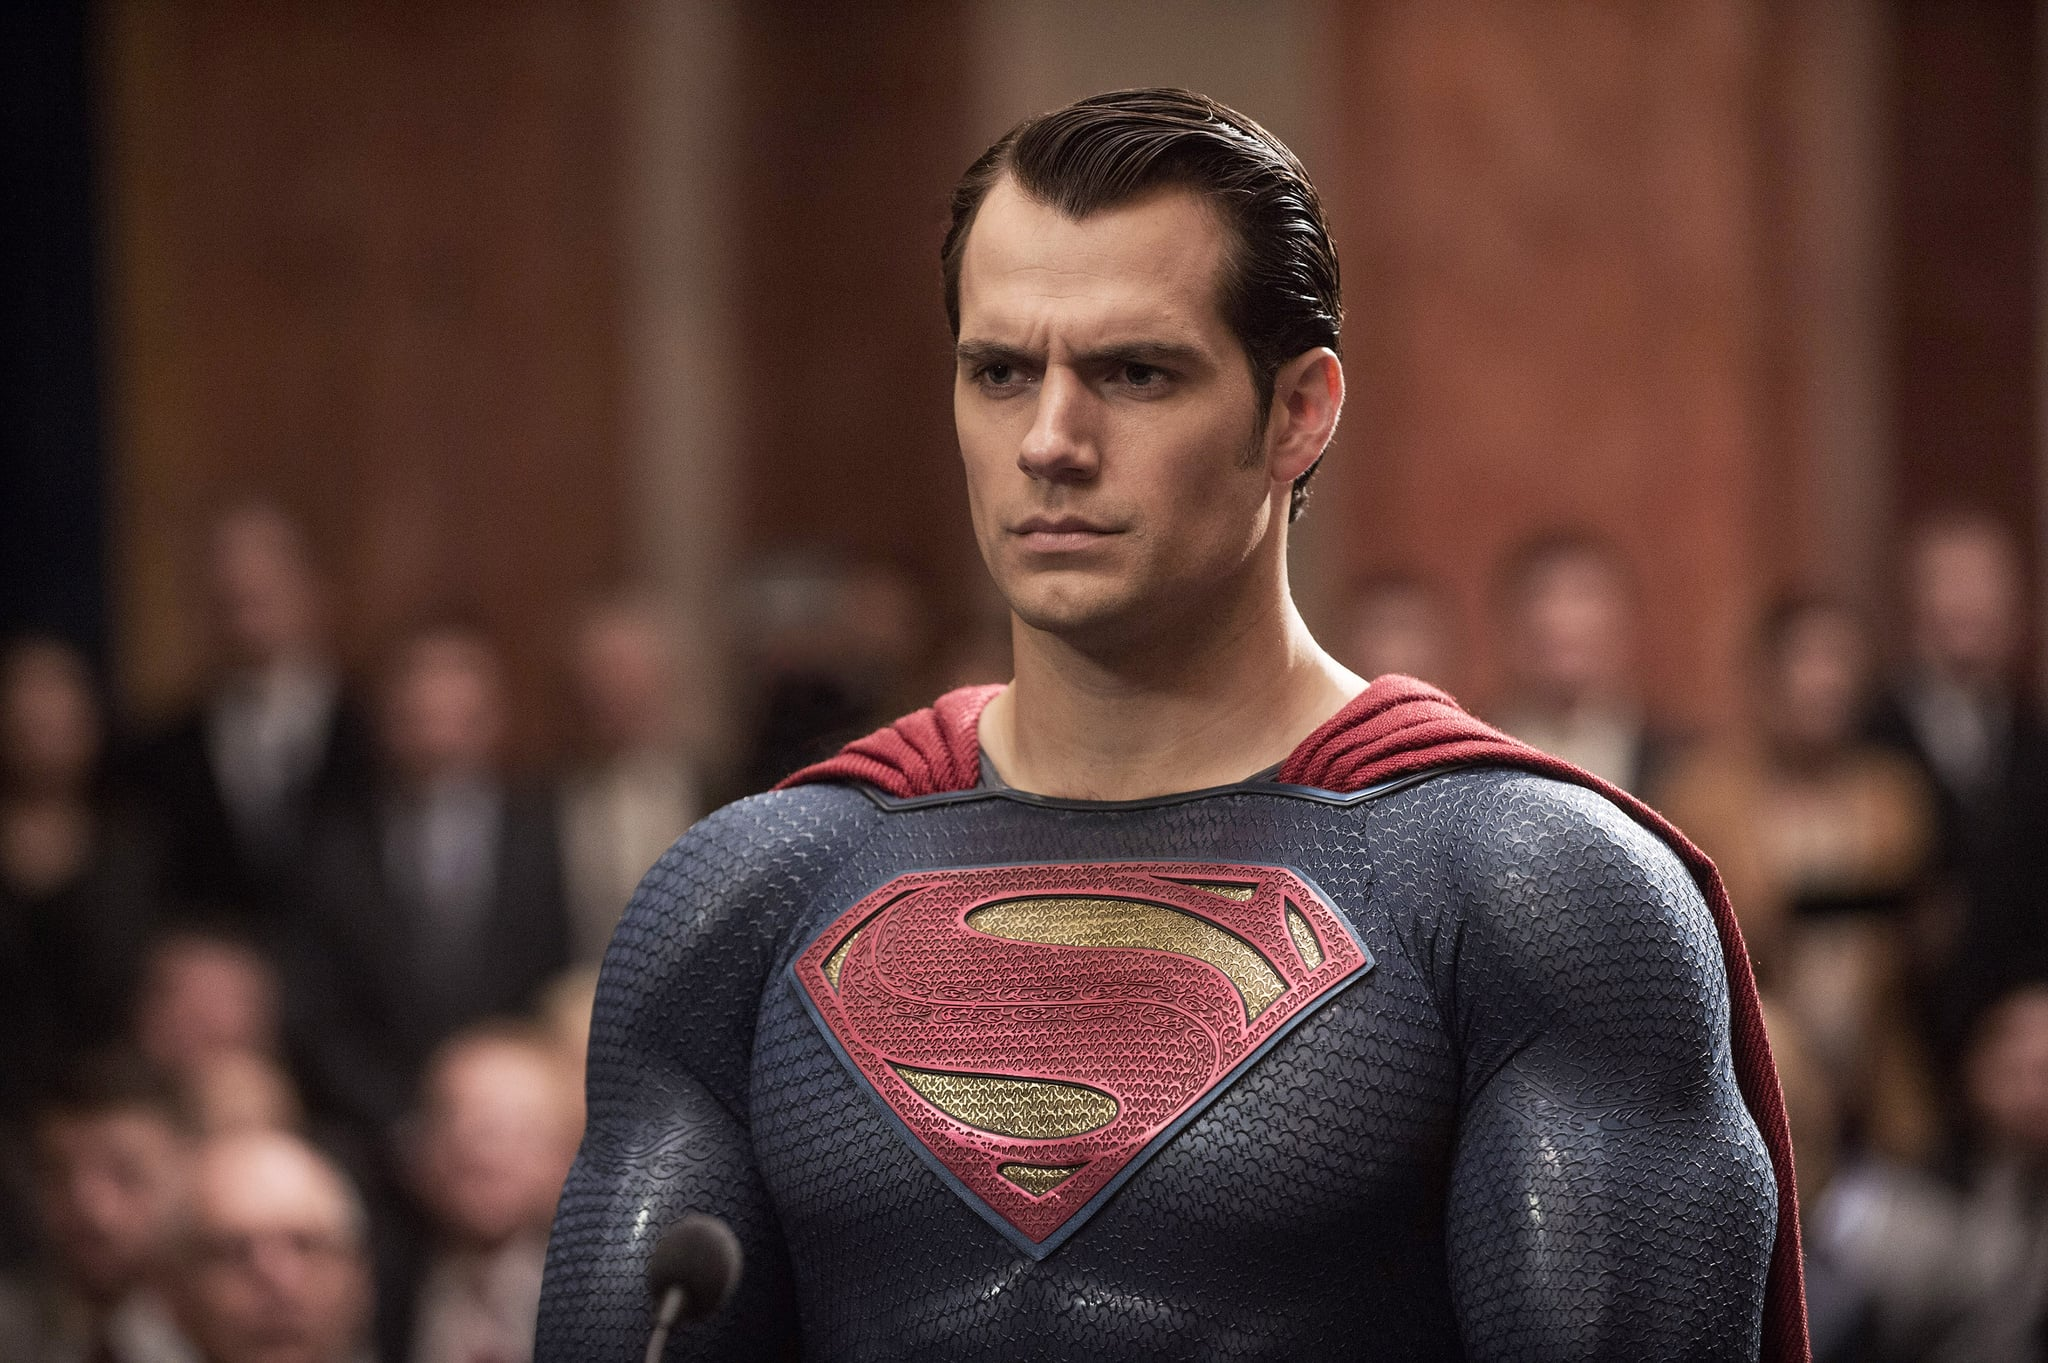 BATMAN V SUPERMAN: DAWN OF JUSTICE, Henry Cavill as Superman, 2016. ph: Clay Enos / Warner Bros. / courtesy Everett Collection